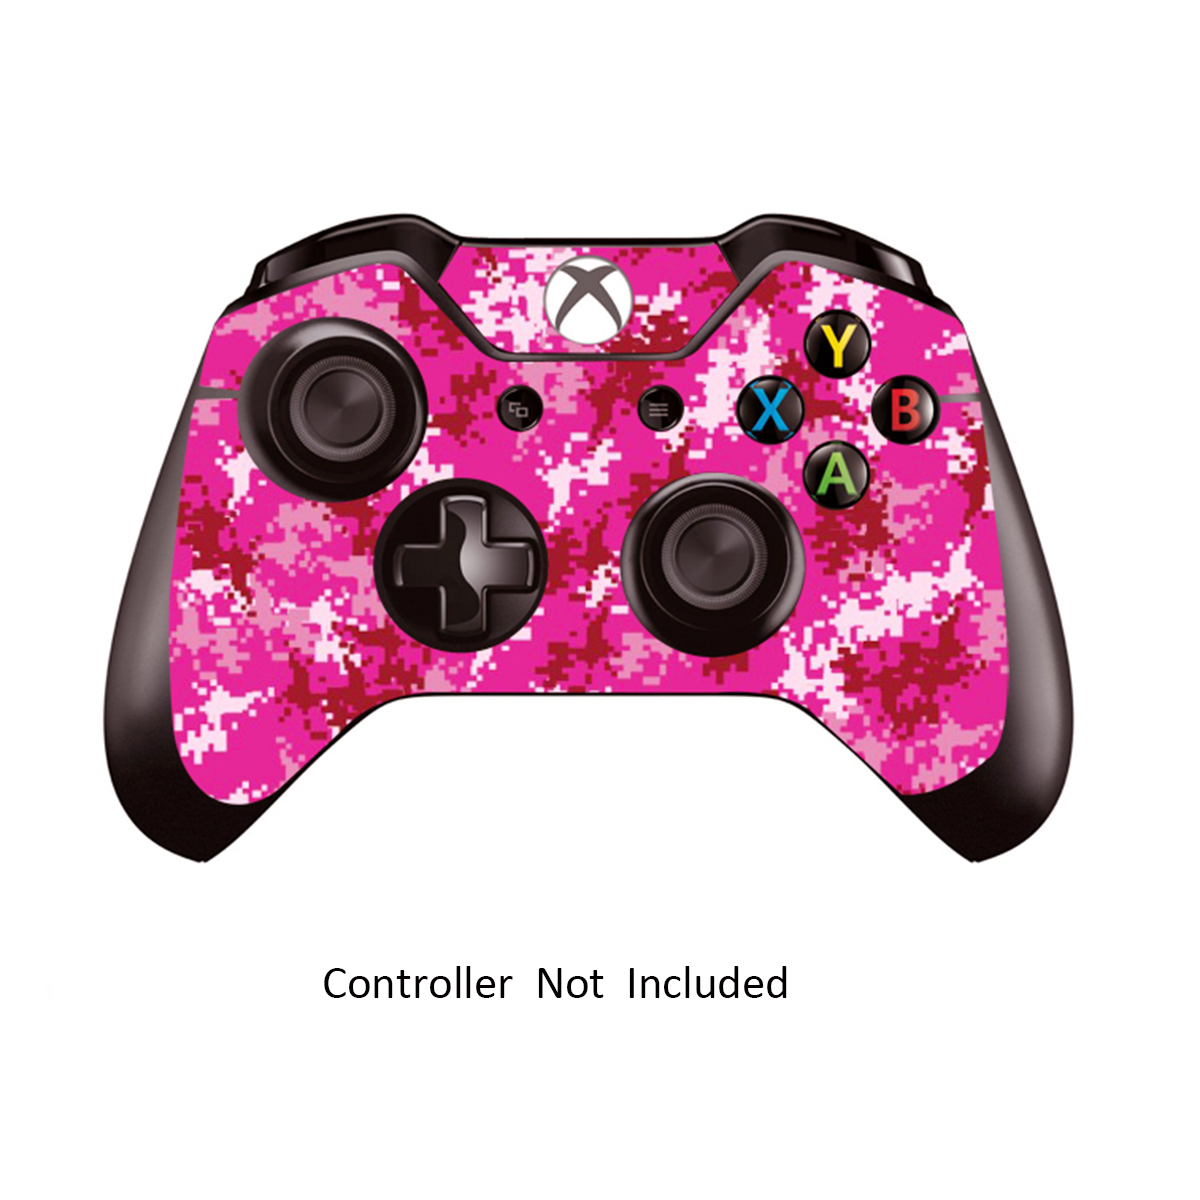 Leather Texture Protector Accessories Custom Orginal Xbox 1 Remote Controller Wired Wireless Protective Vinyl Decals Covers Skins Stickers for Xbox One Games Controller Big Ballin